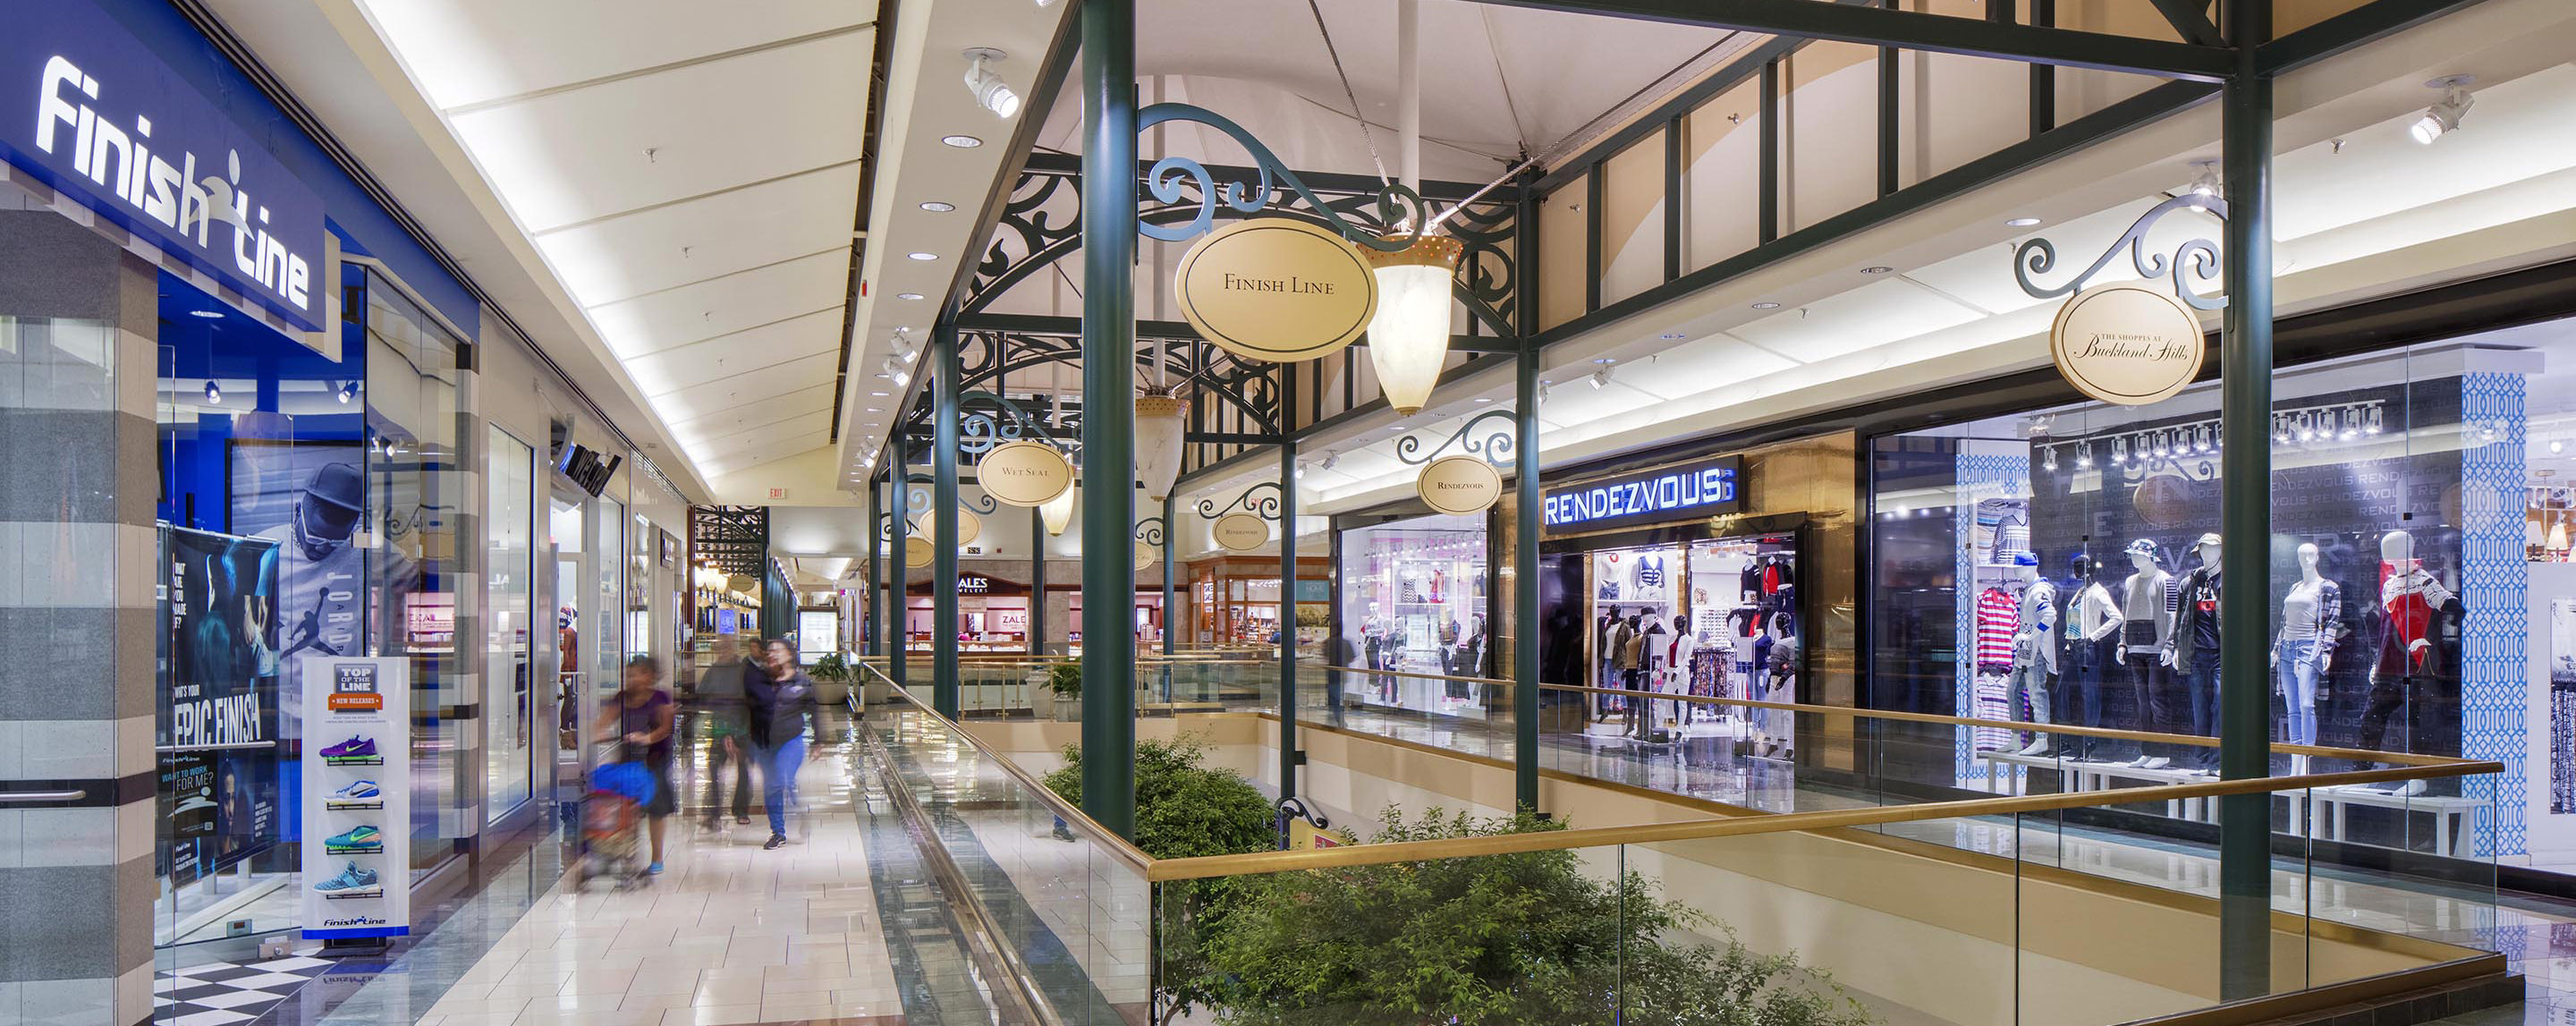 On the upper level of the Shoppes at Buckland Hills, a walkway is lined with store fronts with decorative signs for all the retailers.